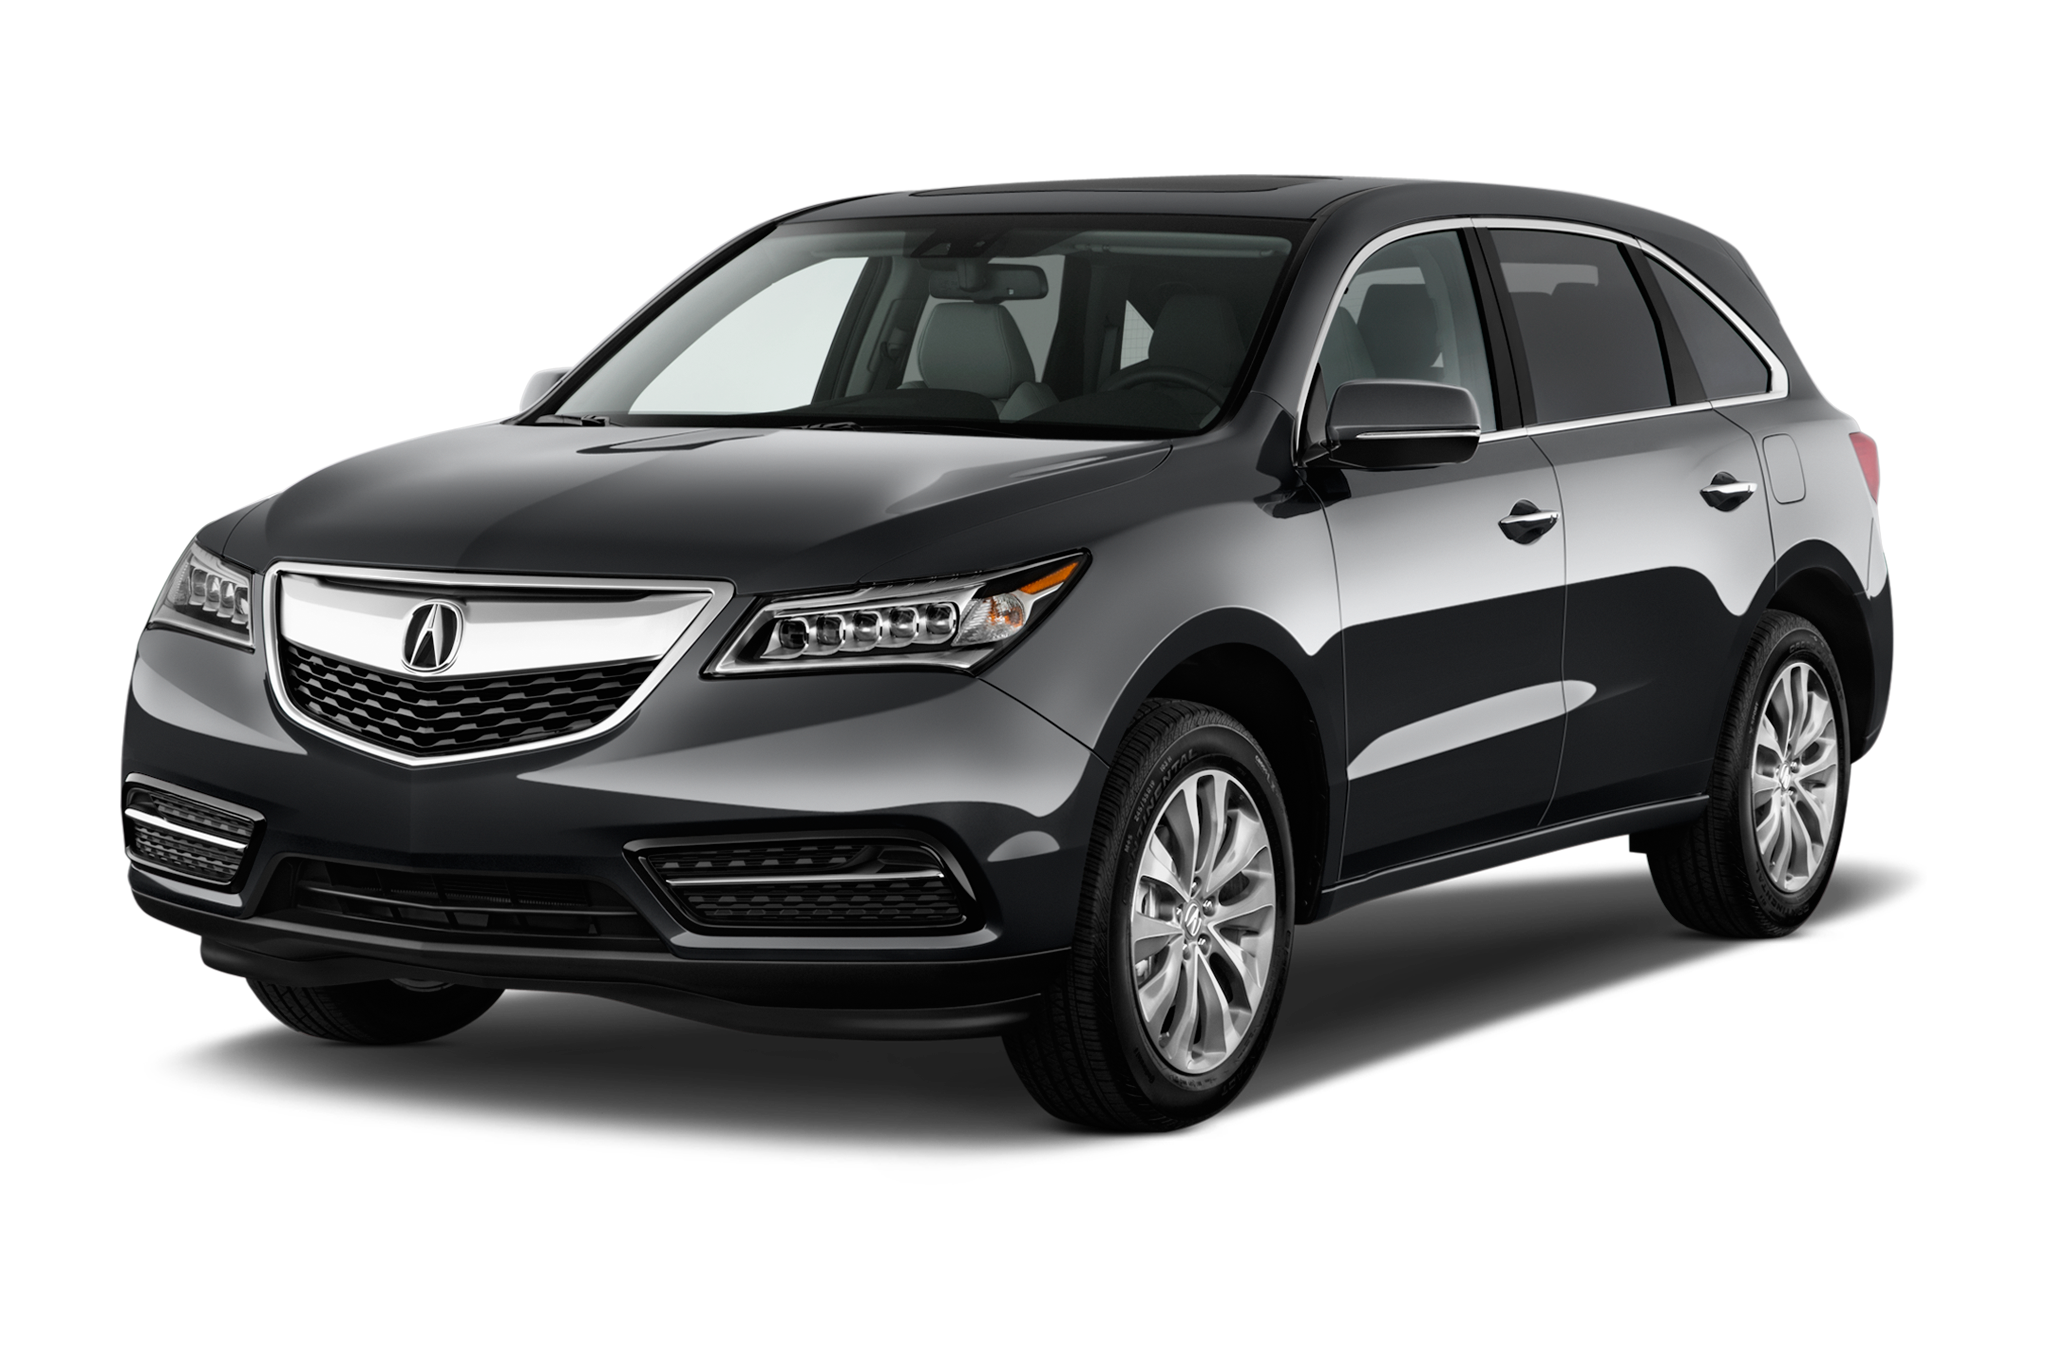 a hybrid mdx gallery acura road cars advanced highly news sport its to drivetrain by carcostcanada make figured incorporating finally test relevant way out